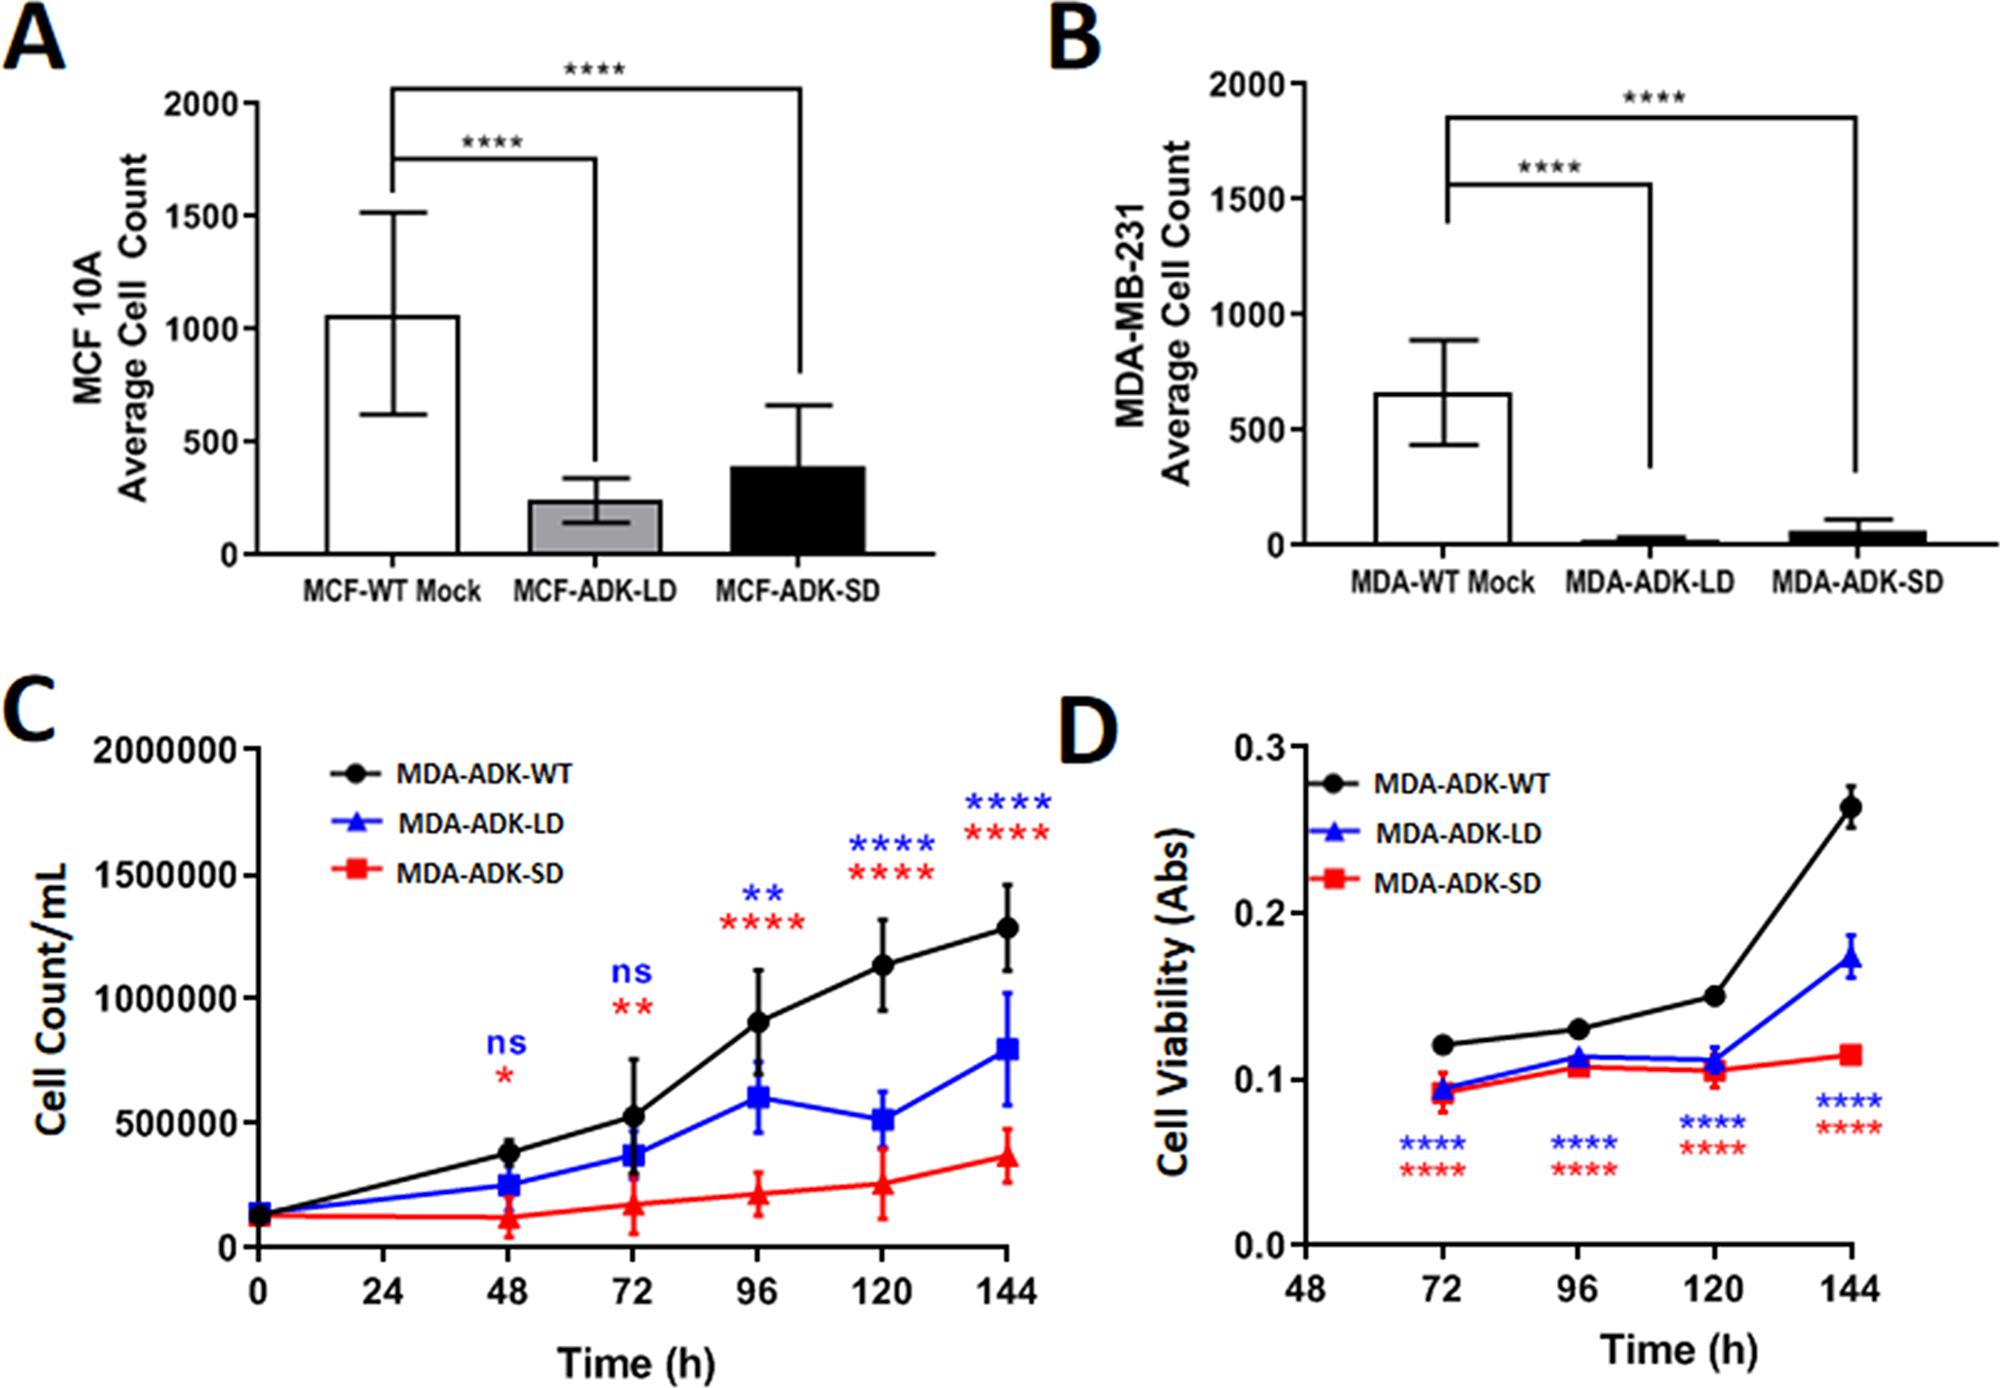 ADK manipulations in breast cancer cells and its effect on growth and viability.